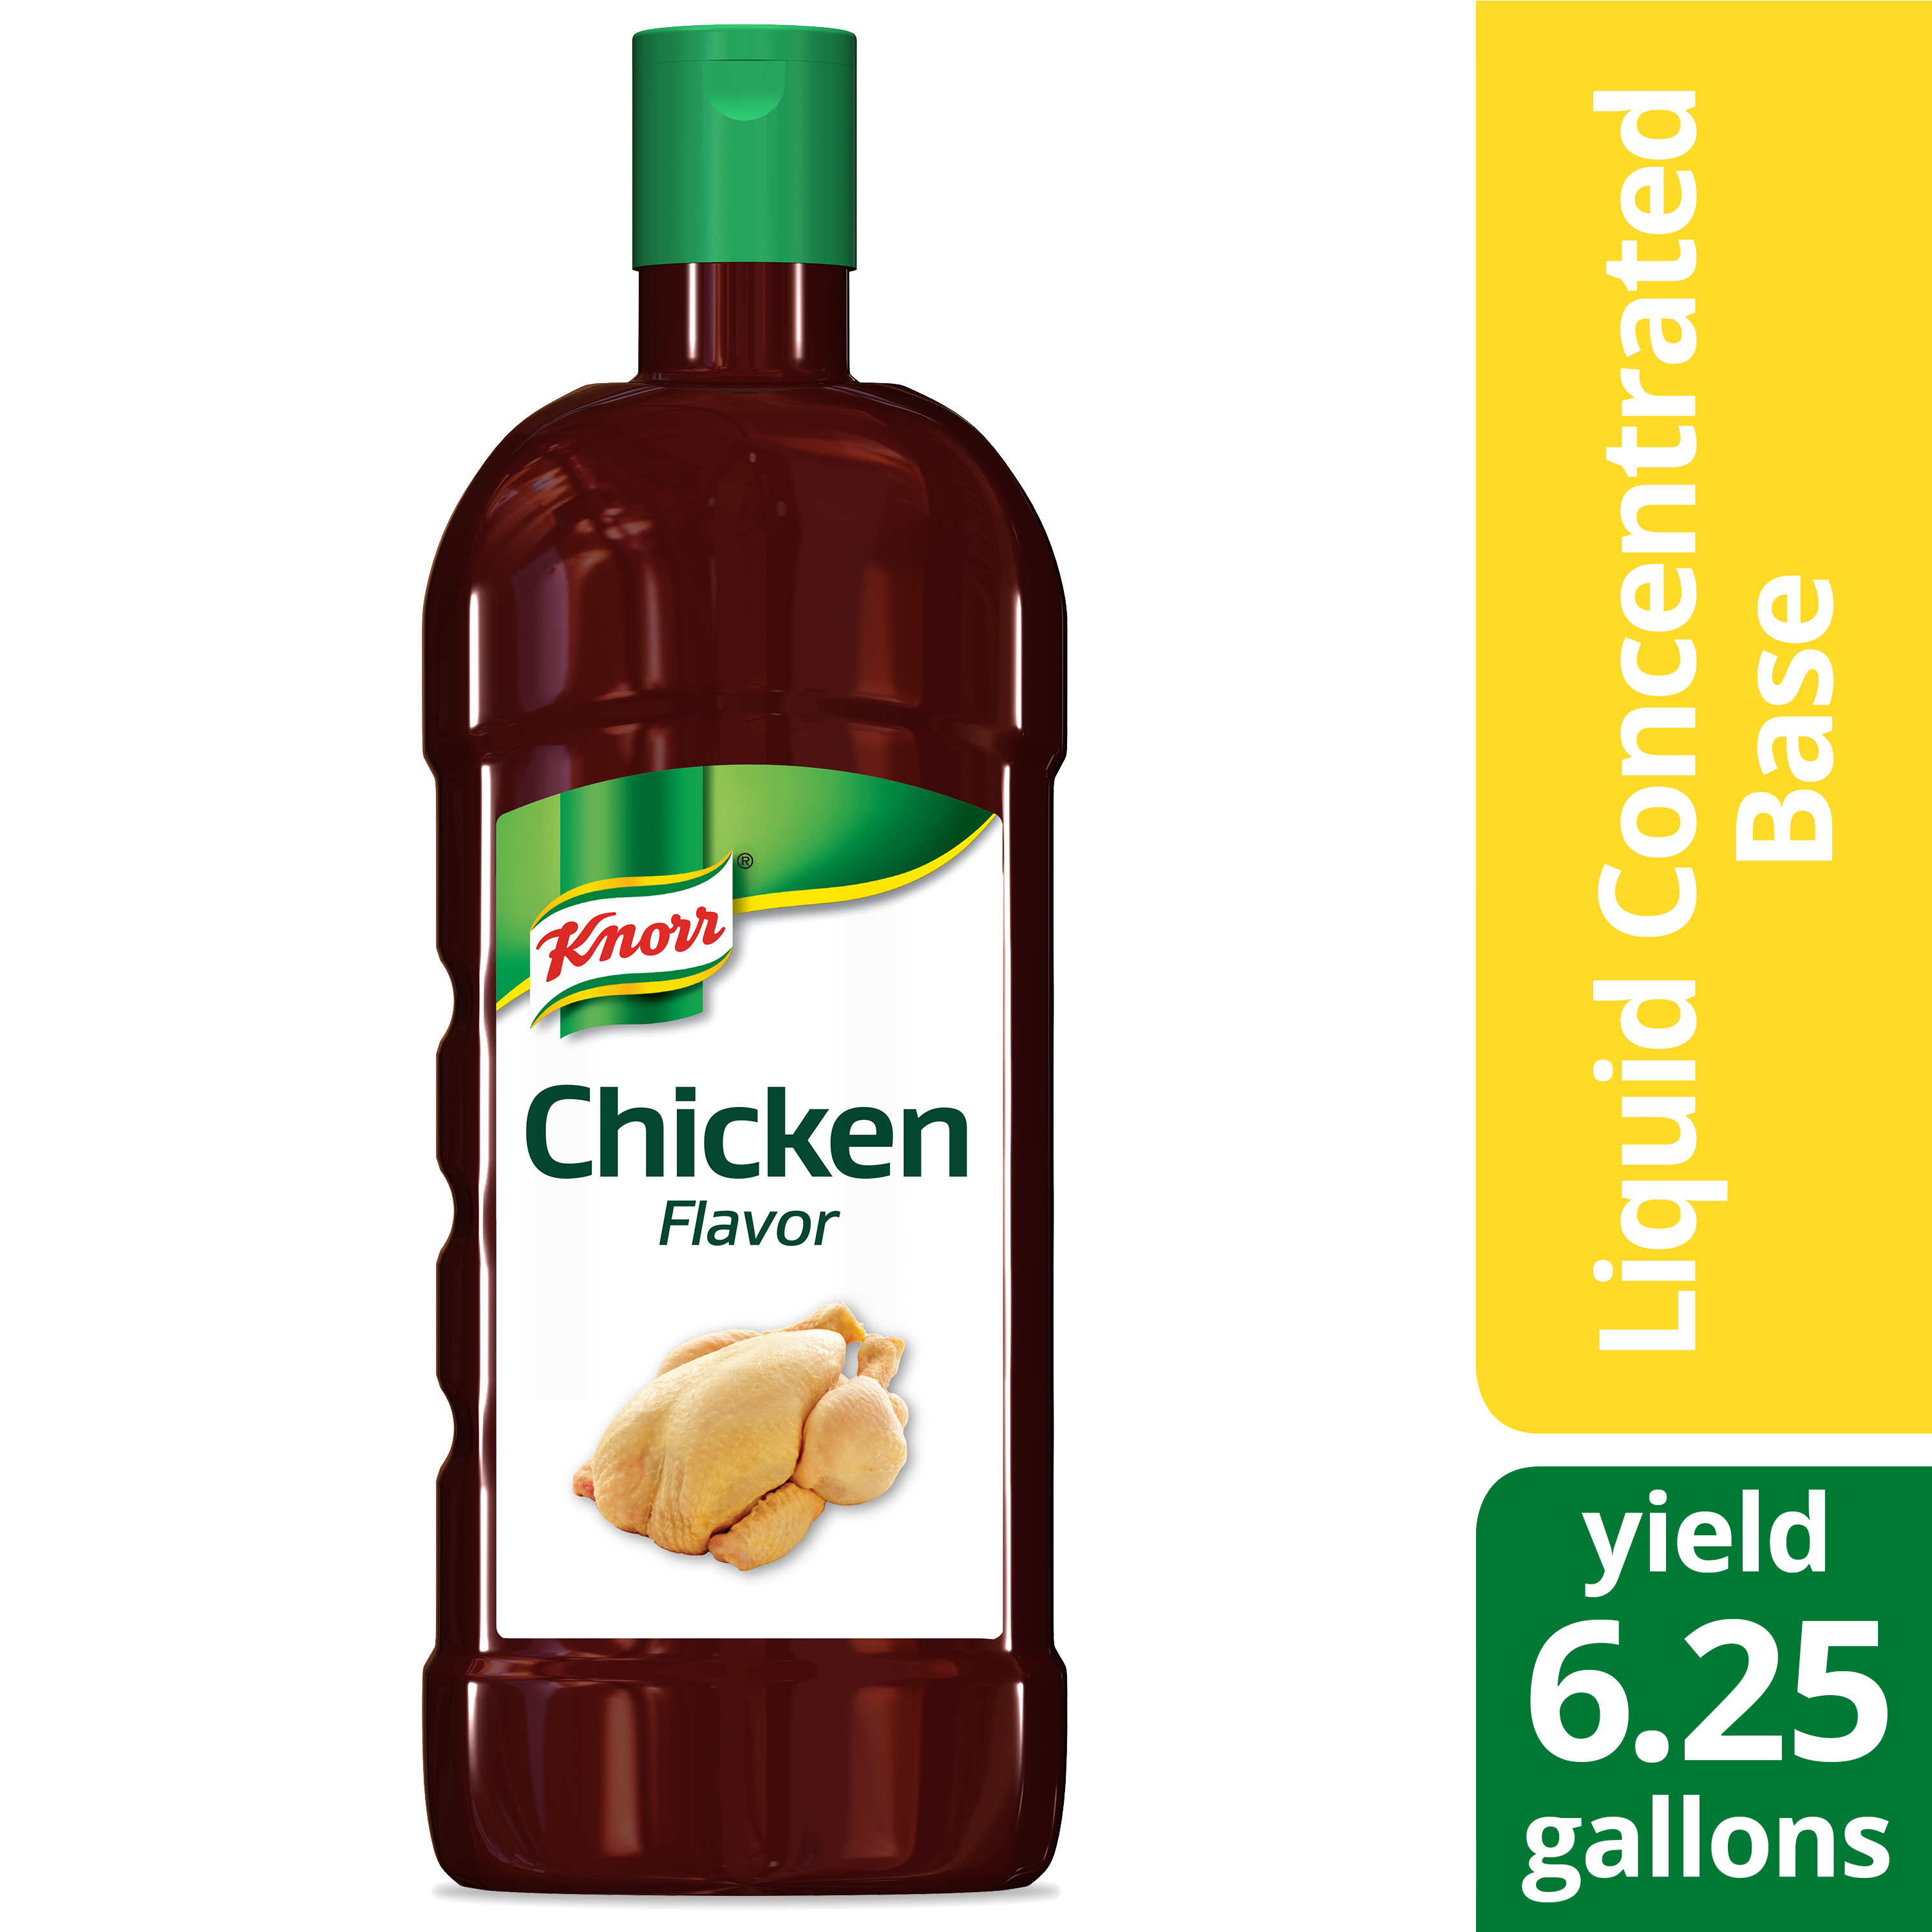 Knorr® Liquid Concentrated Base Chicken 32 ounces, Pack of 4 - Knorr® liquid concentrated base offers exceptional flavor, color, and aroma.